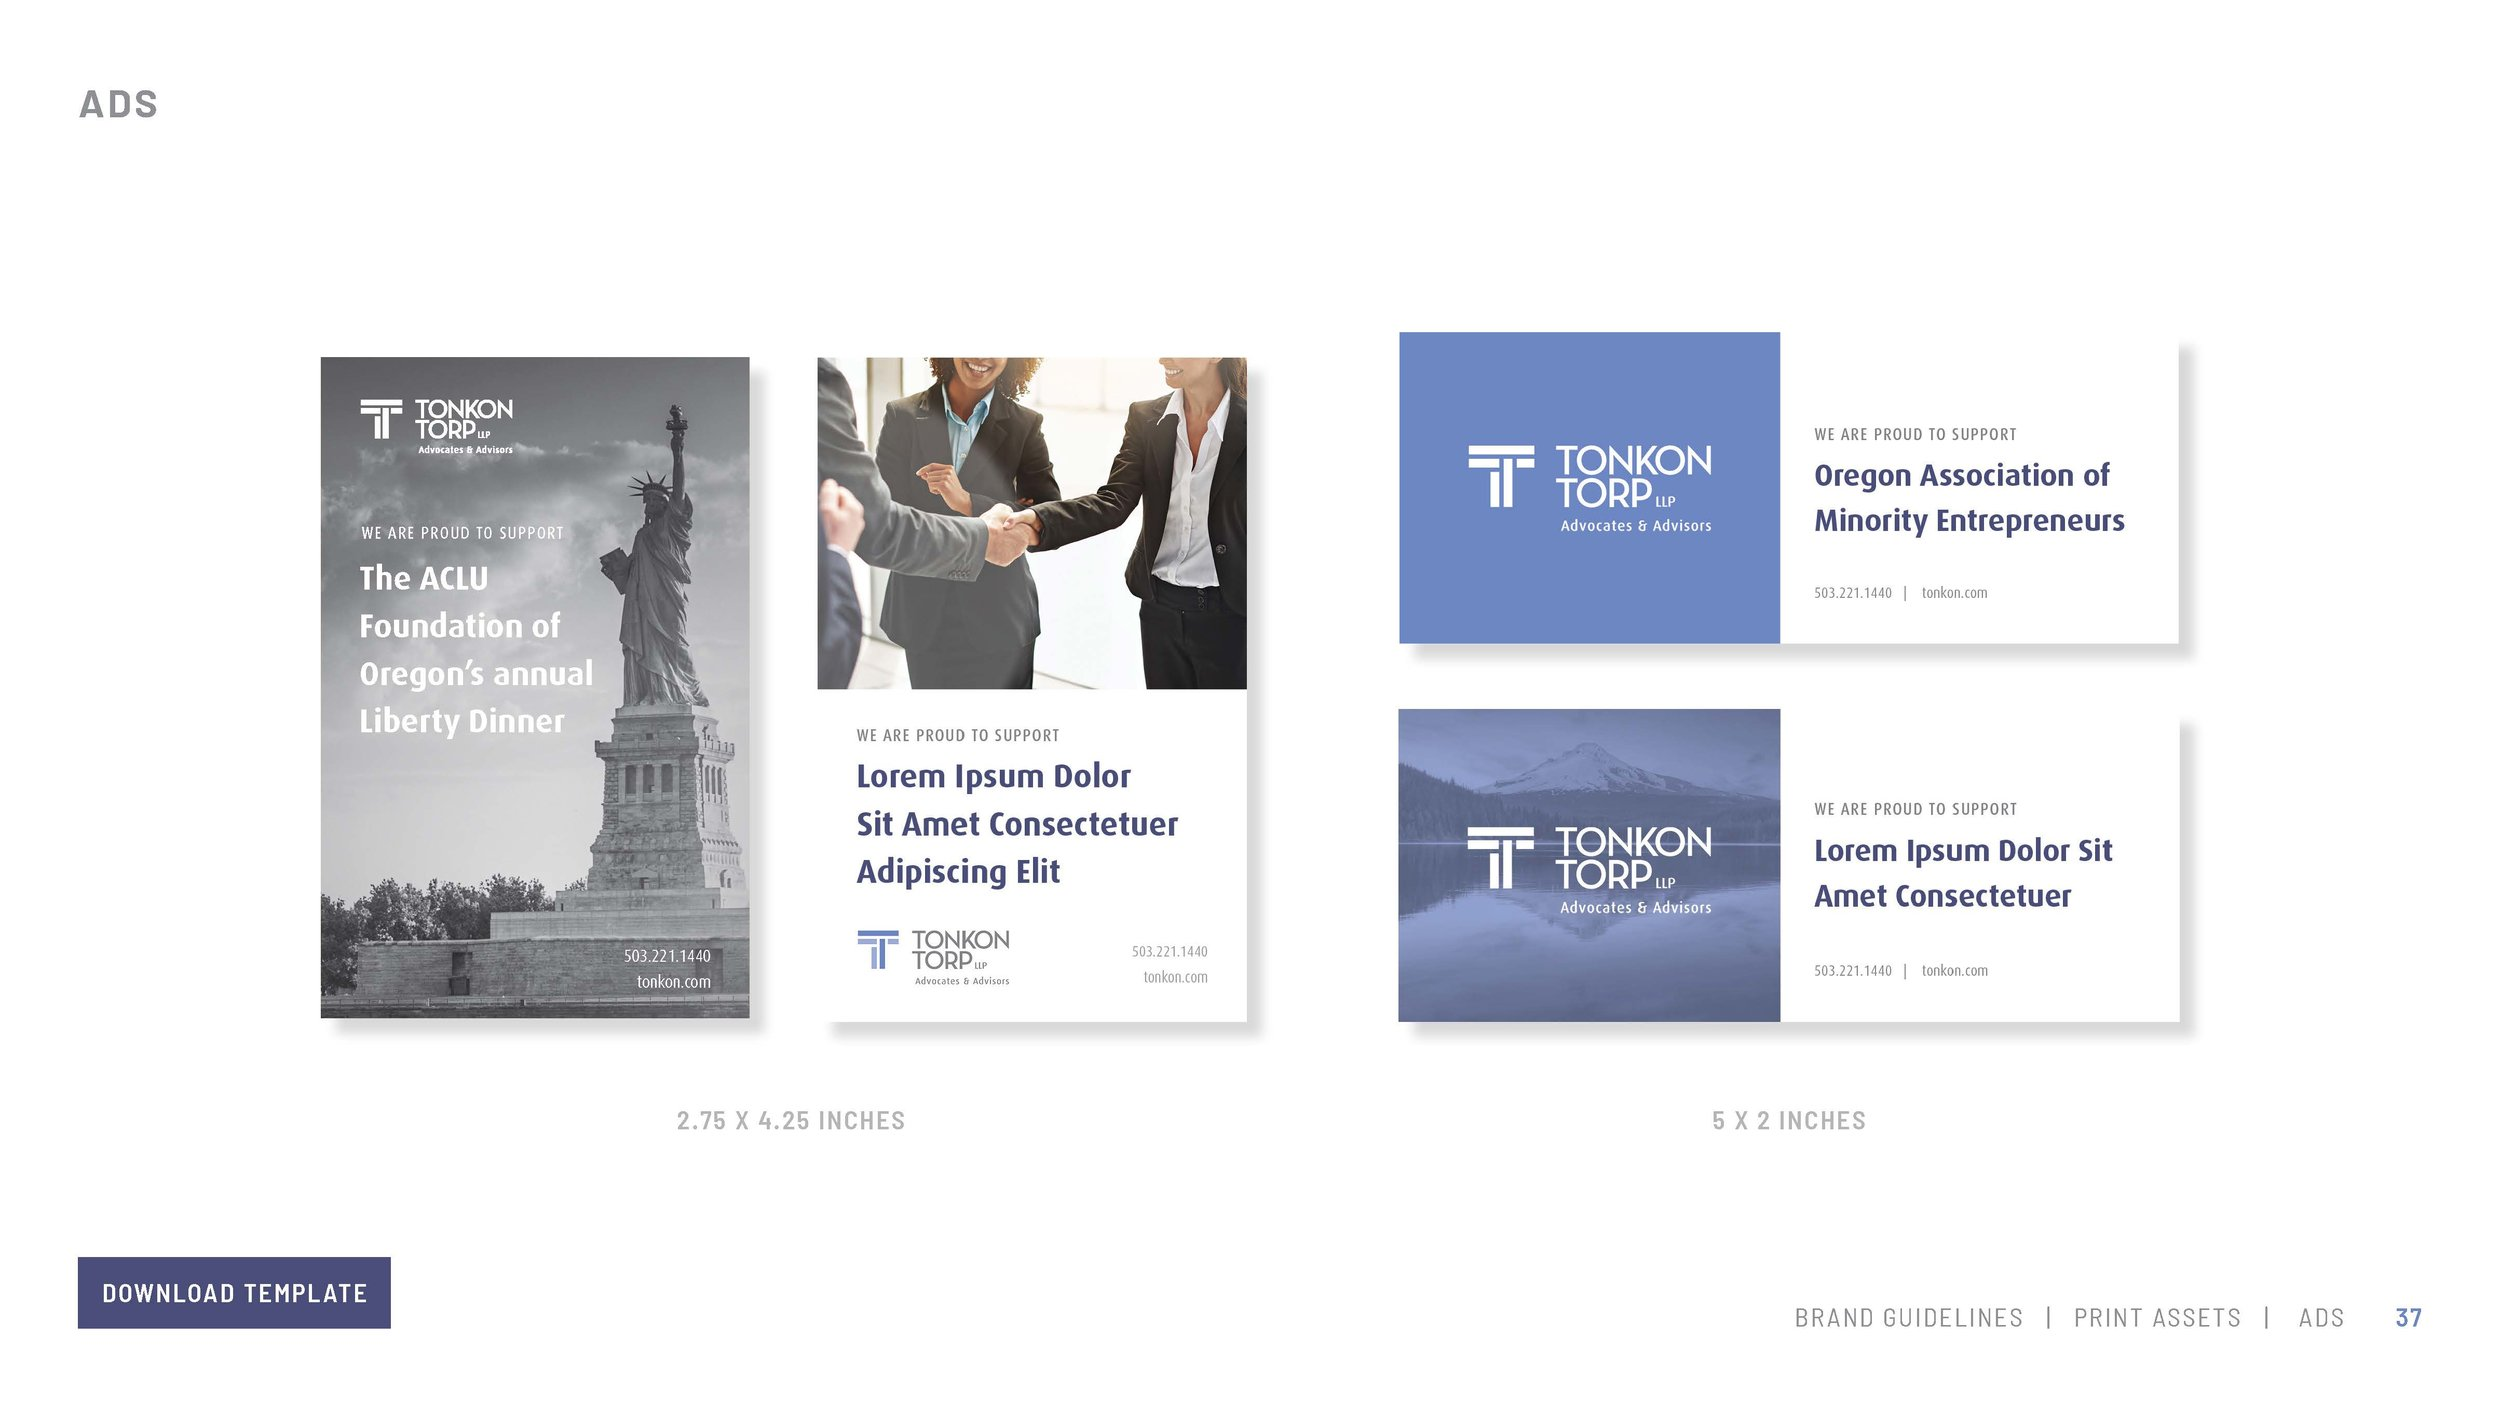 TTL_Brand Guidelines_Rd2_Page_37.jpg